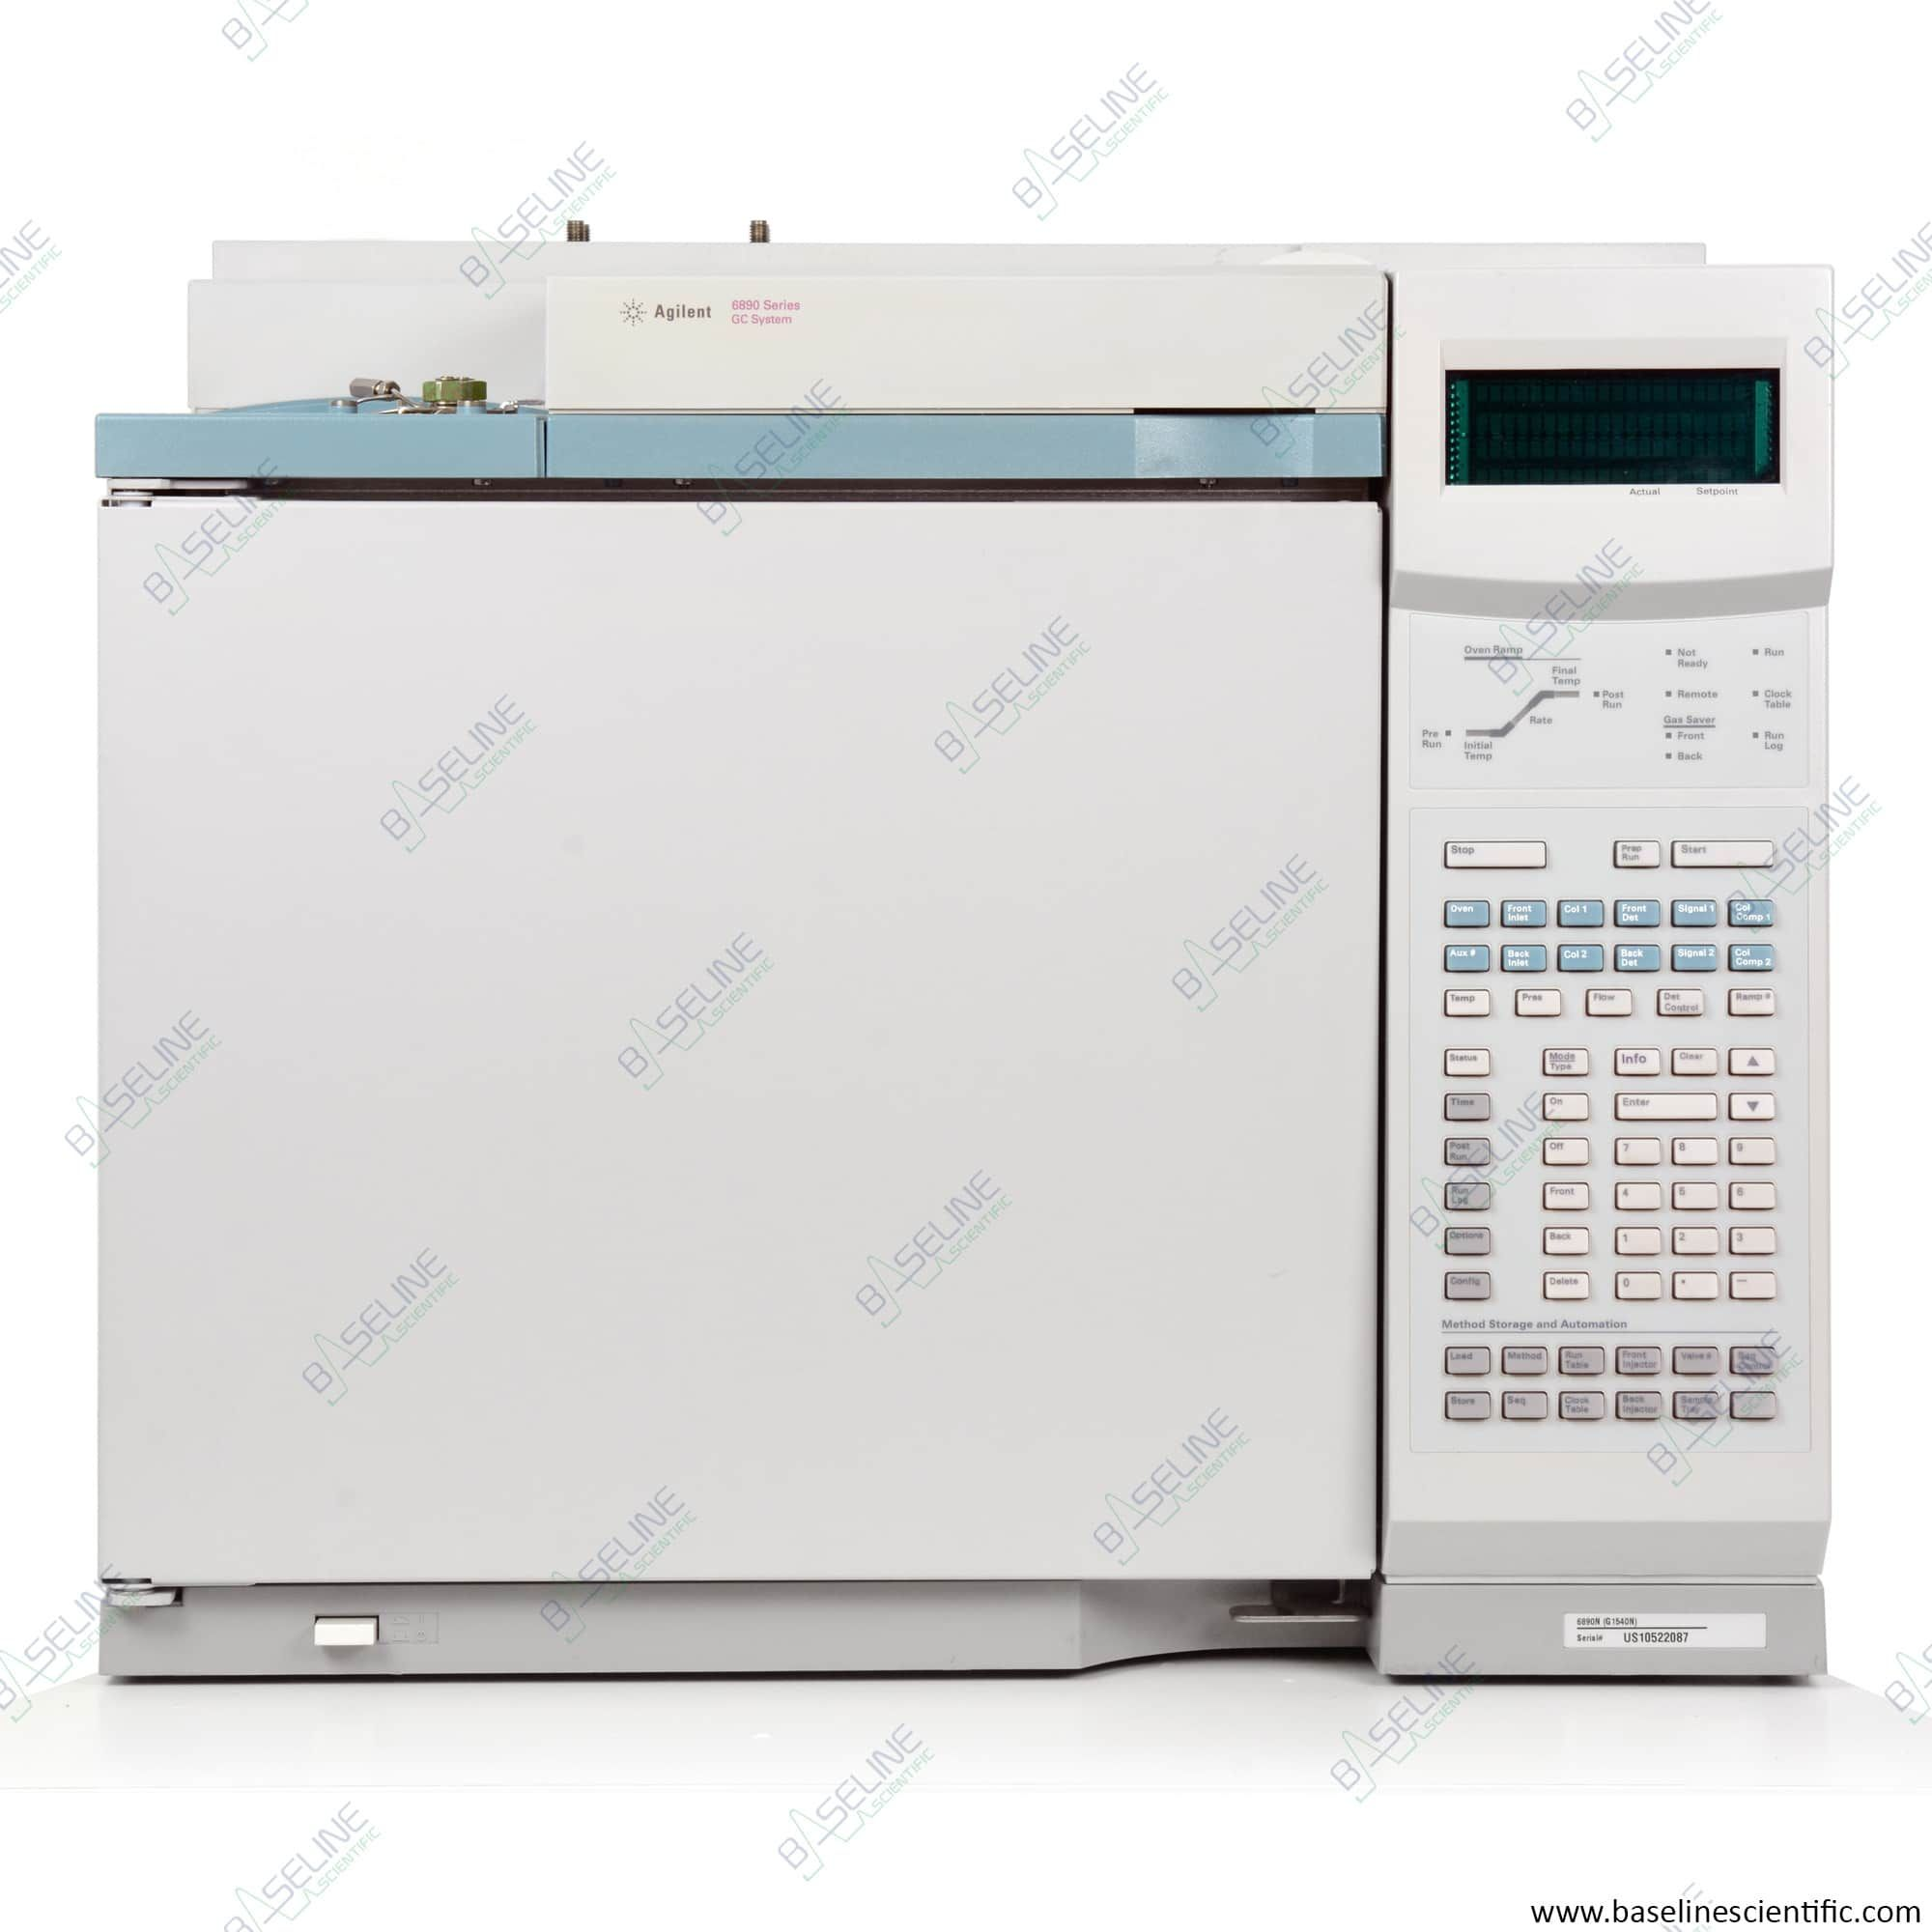 Refurbished Agilent 6890 GC with Single PP Purged/Packed Inlet and Single TCD